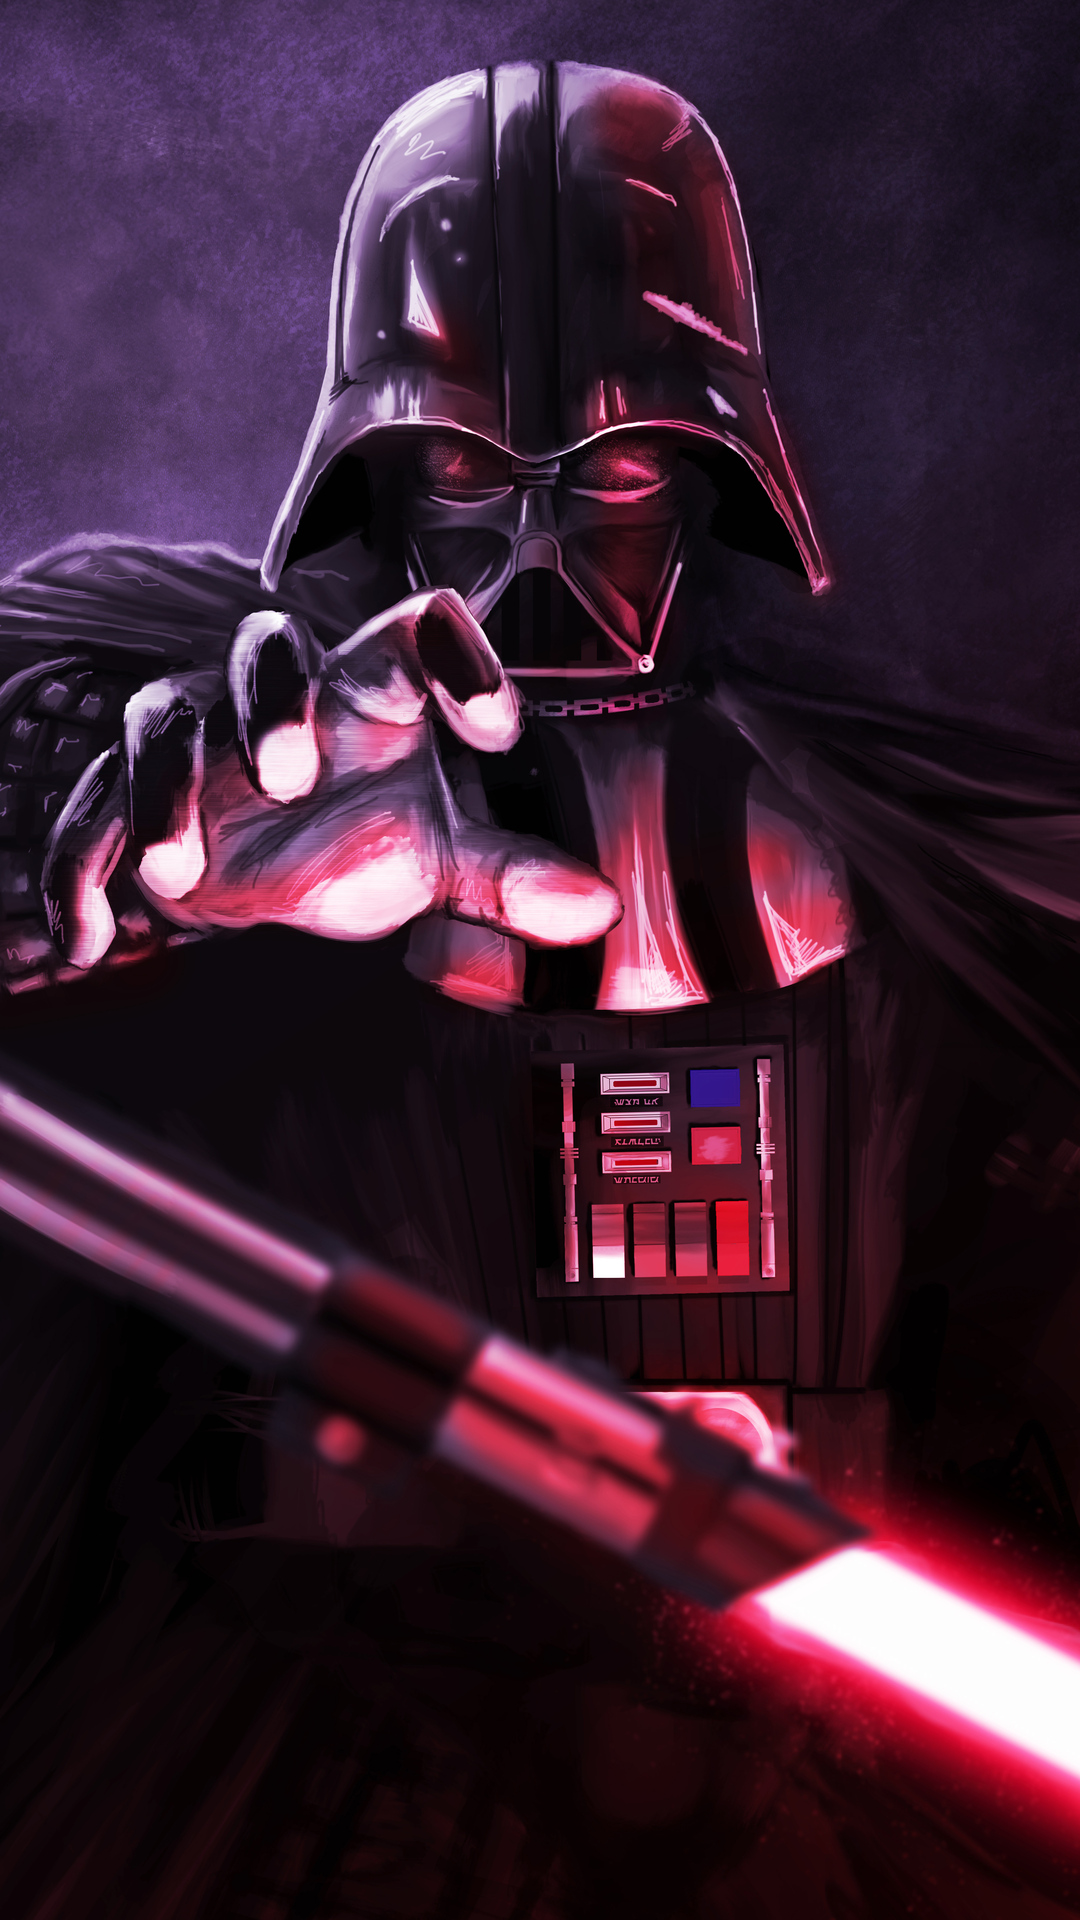 1080x1920 Darth Vader Art 4k Iphone 7 6s 6 Plus Pixel Xl One Plus